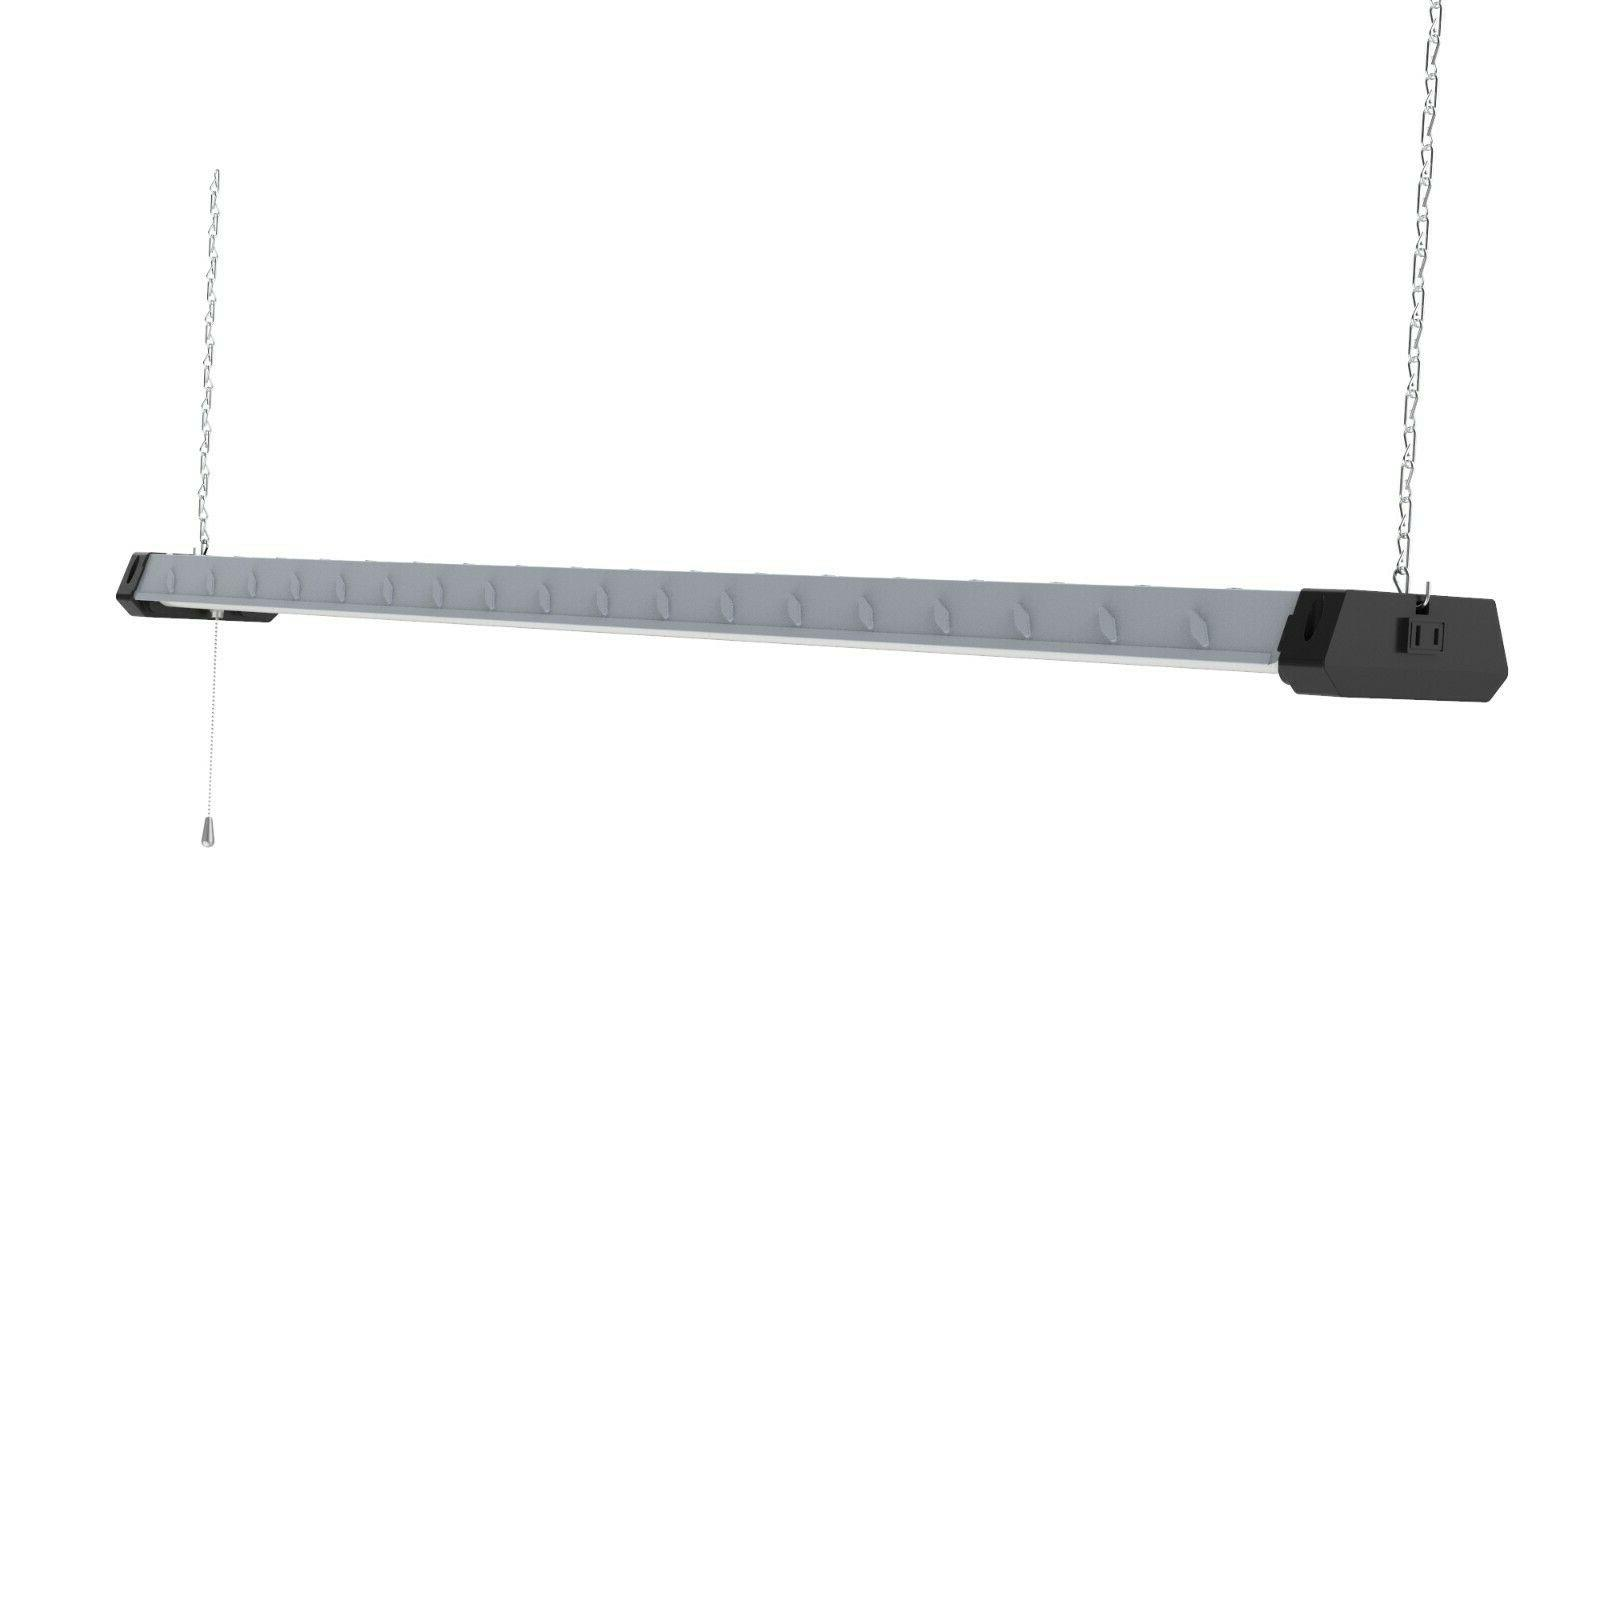 4FT Shop Heavy Duty Linkable Fixture 5500lm Bright White Work Garage